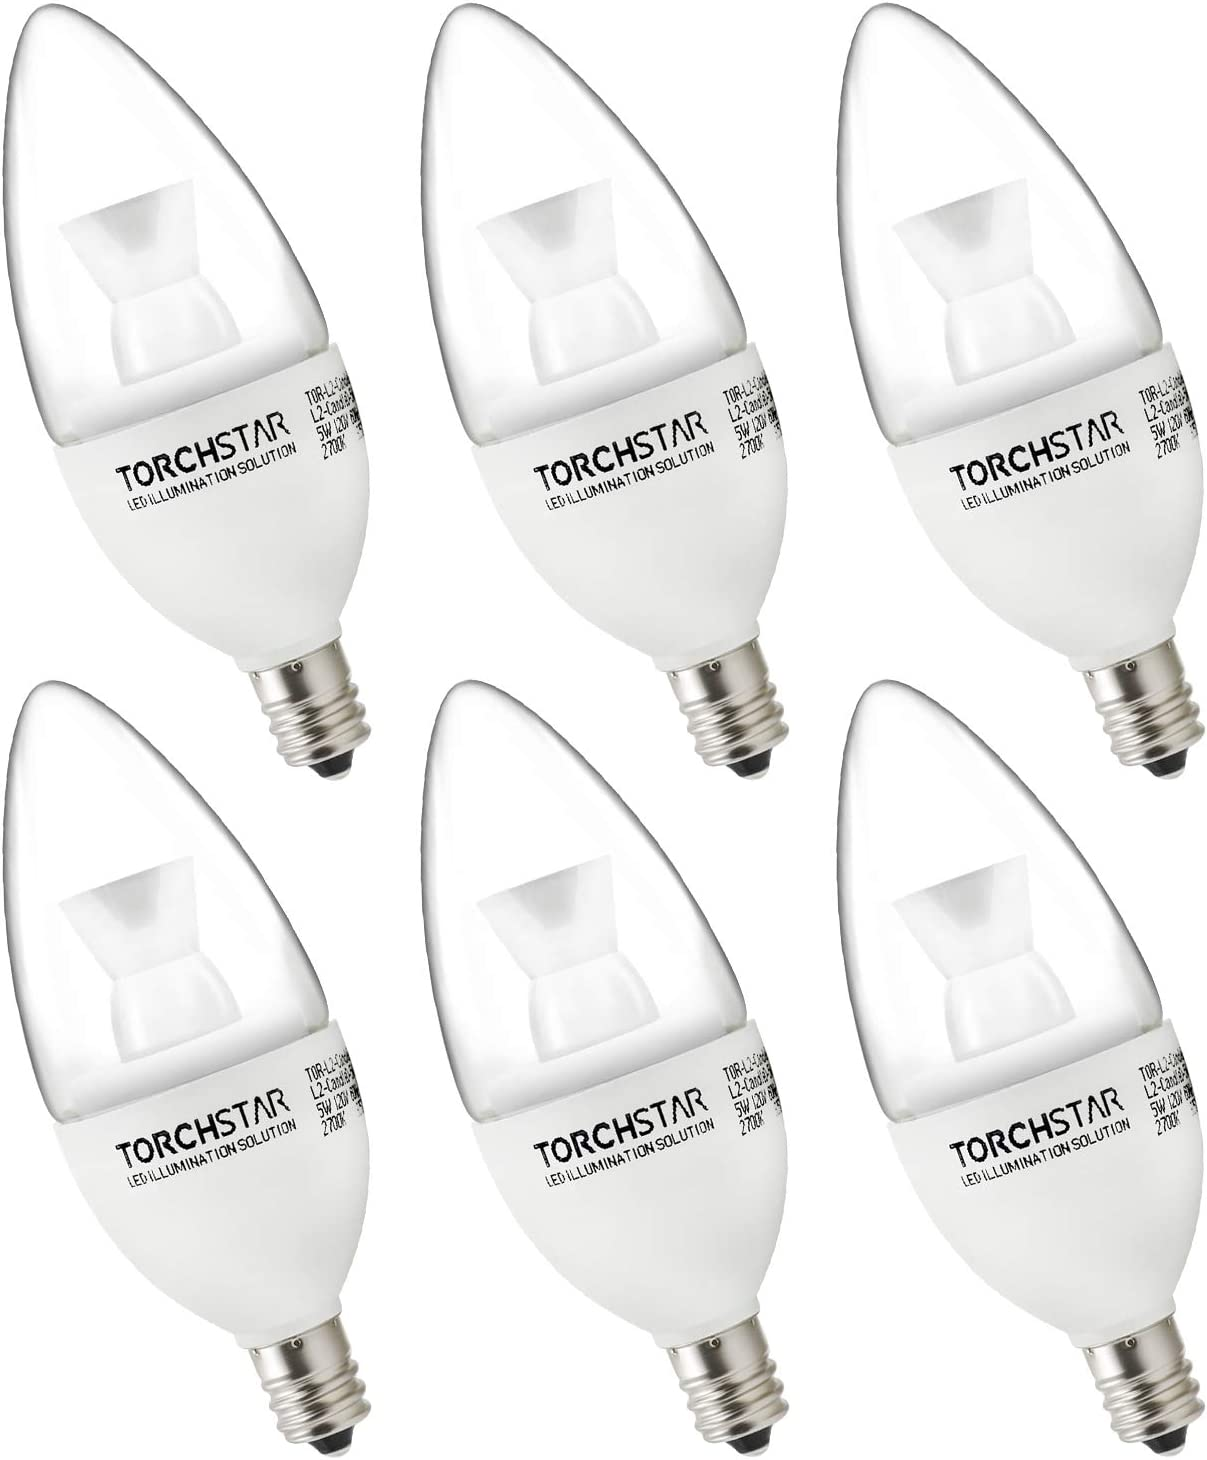 TORCHSTAR 5W Dimmable E12 LED Candelabra Bulb, 40W Eqv. Energy Star & UL Certified LED Candle Bulb, 2700K Warm White, 120° Beam Angle for Lanterns, Sconces, Home Decorative Lighting, Pack of 6